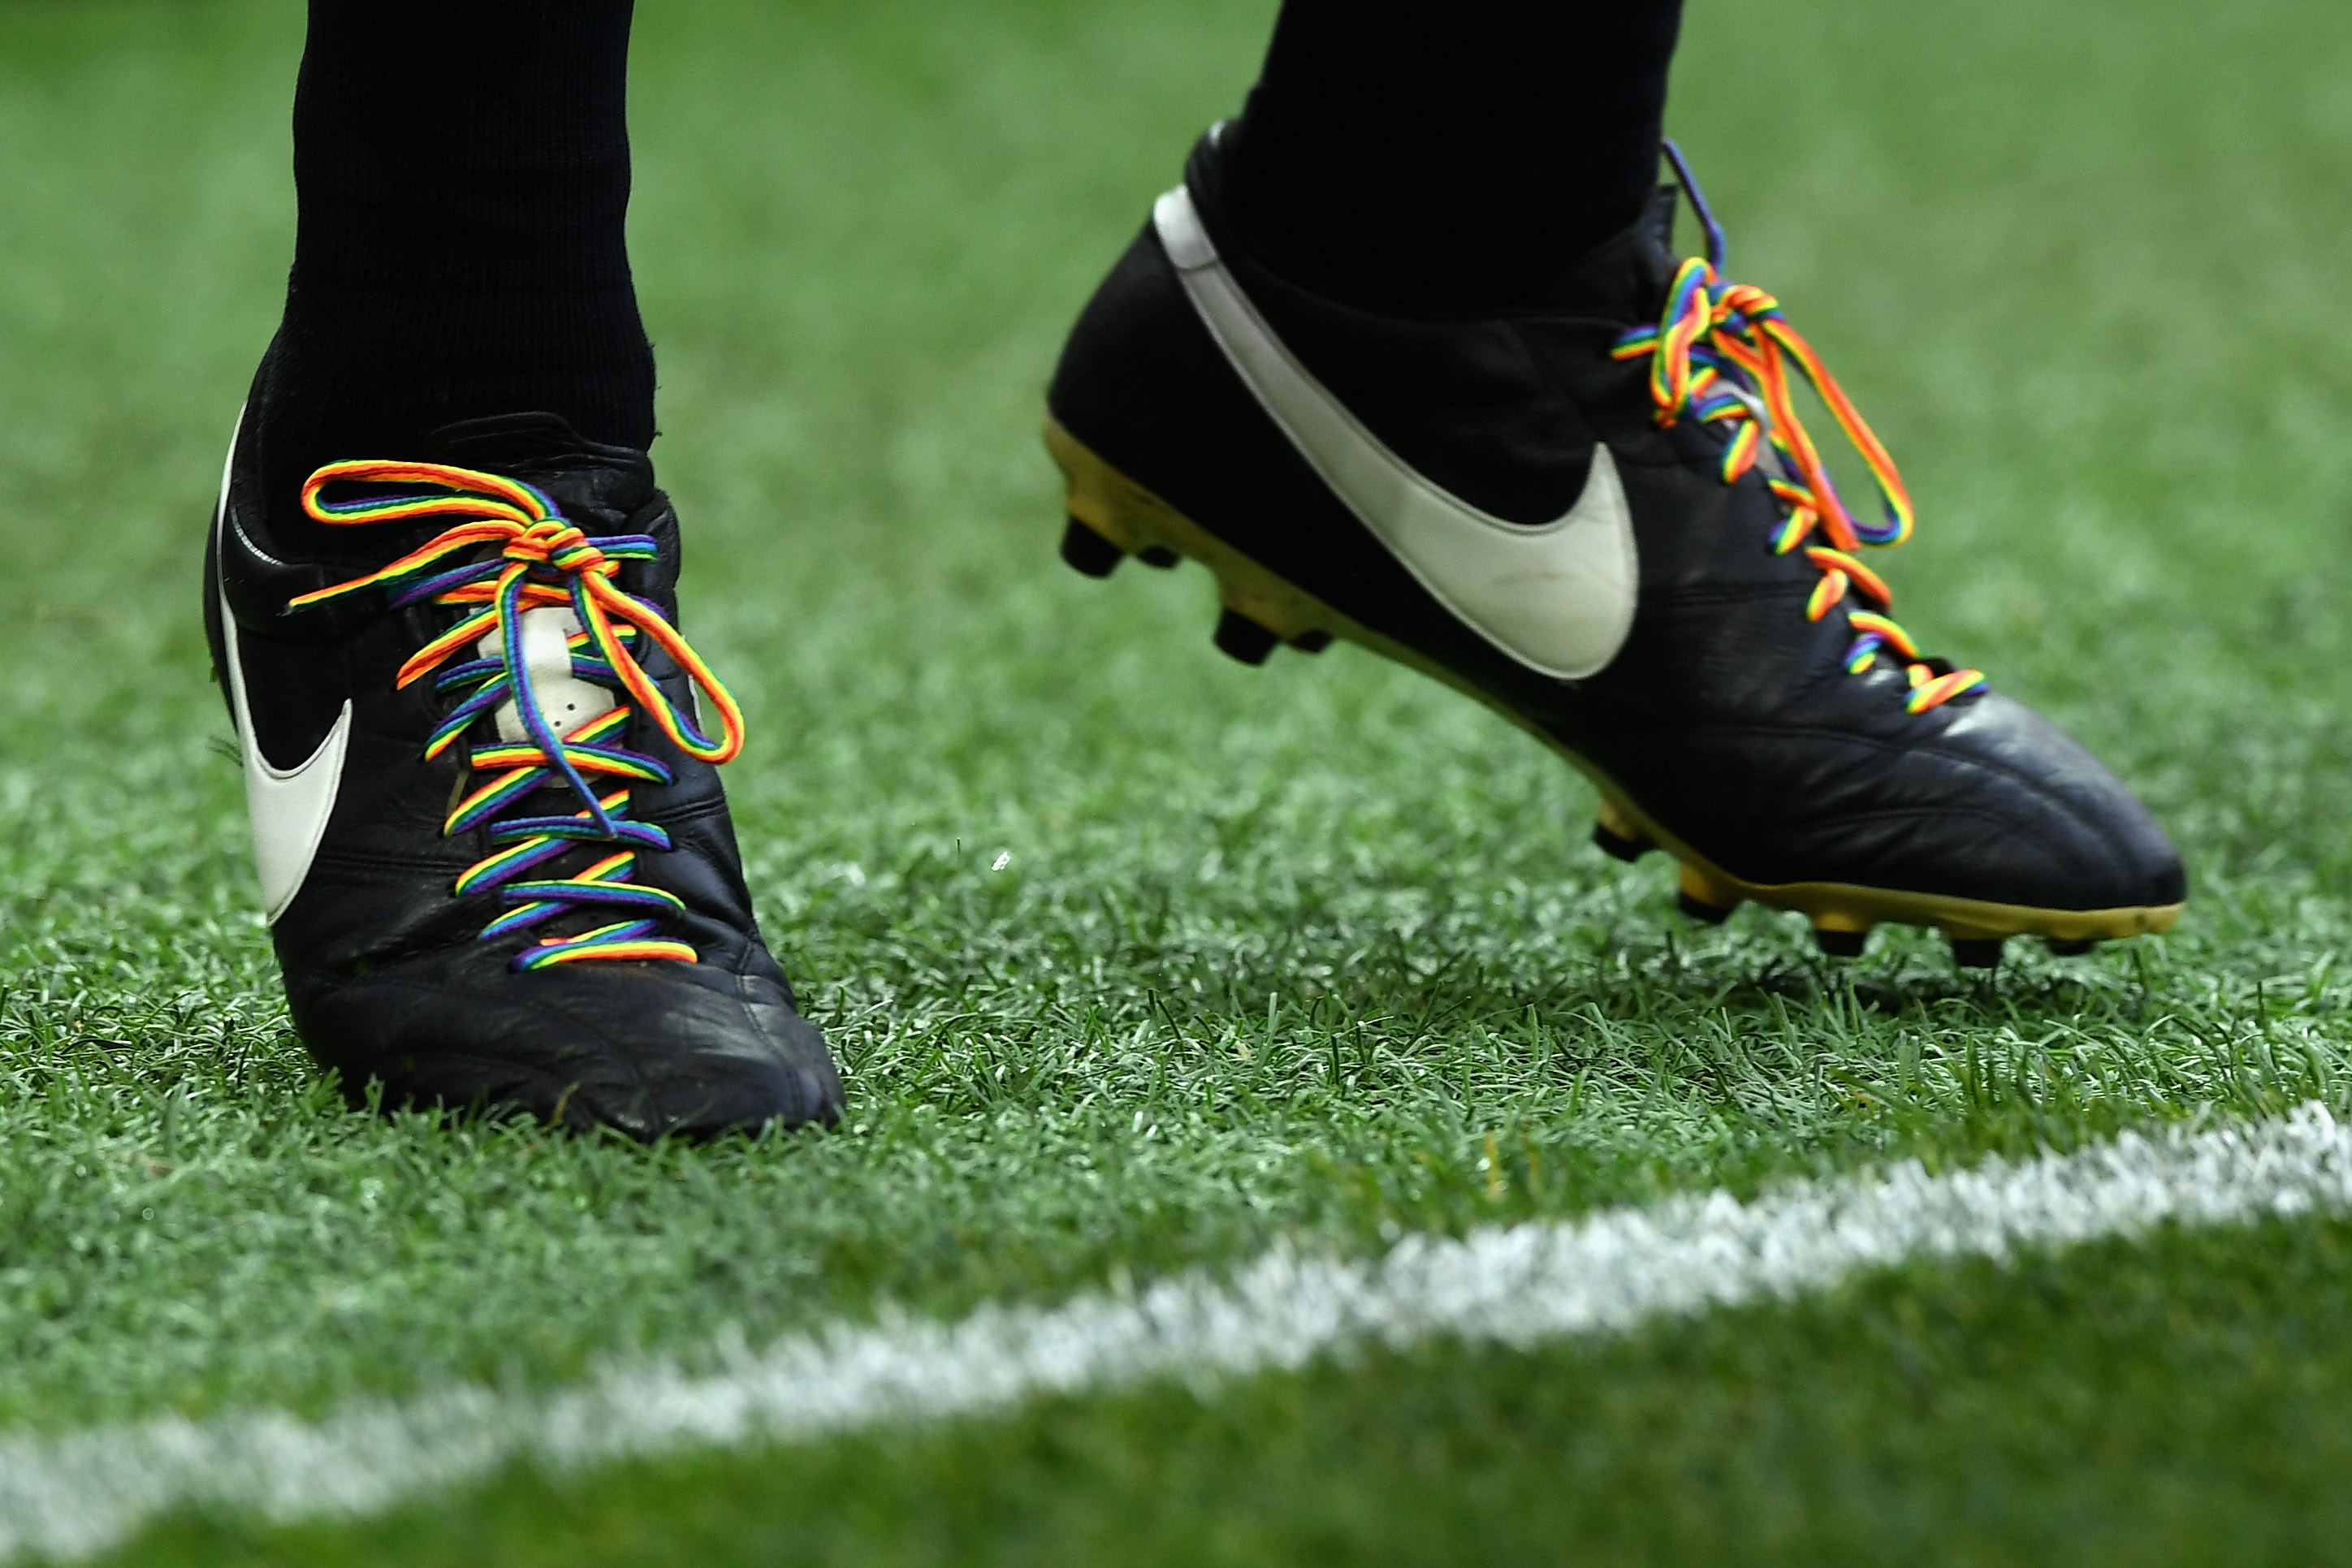 Image of football boots with rainbow laces.